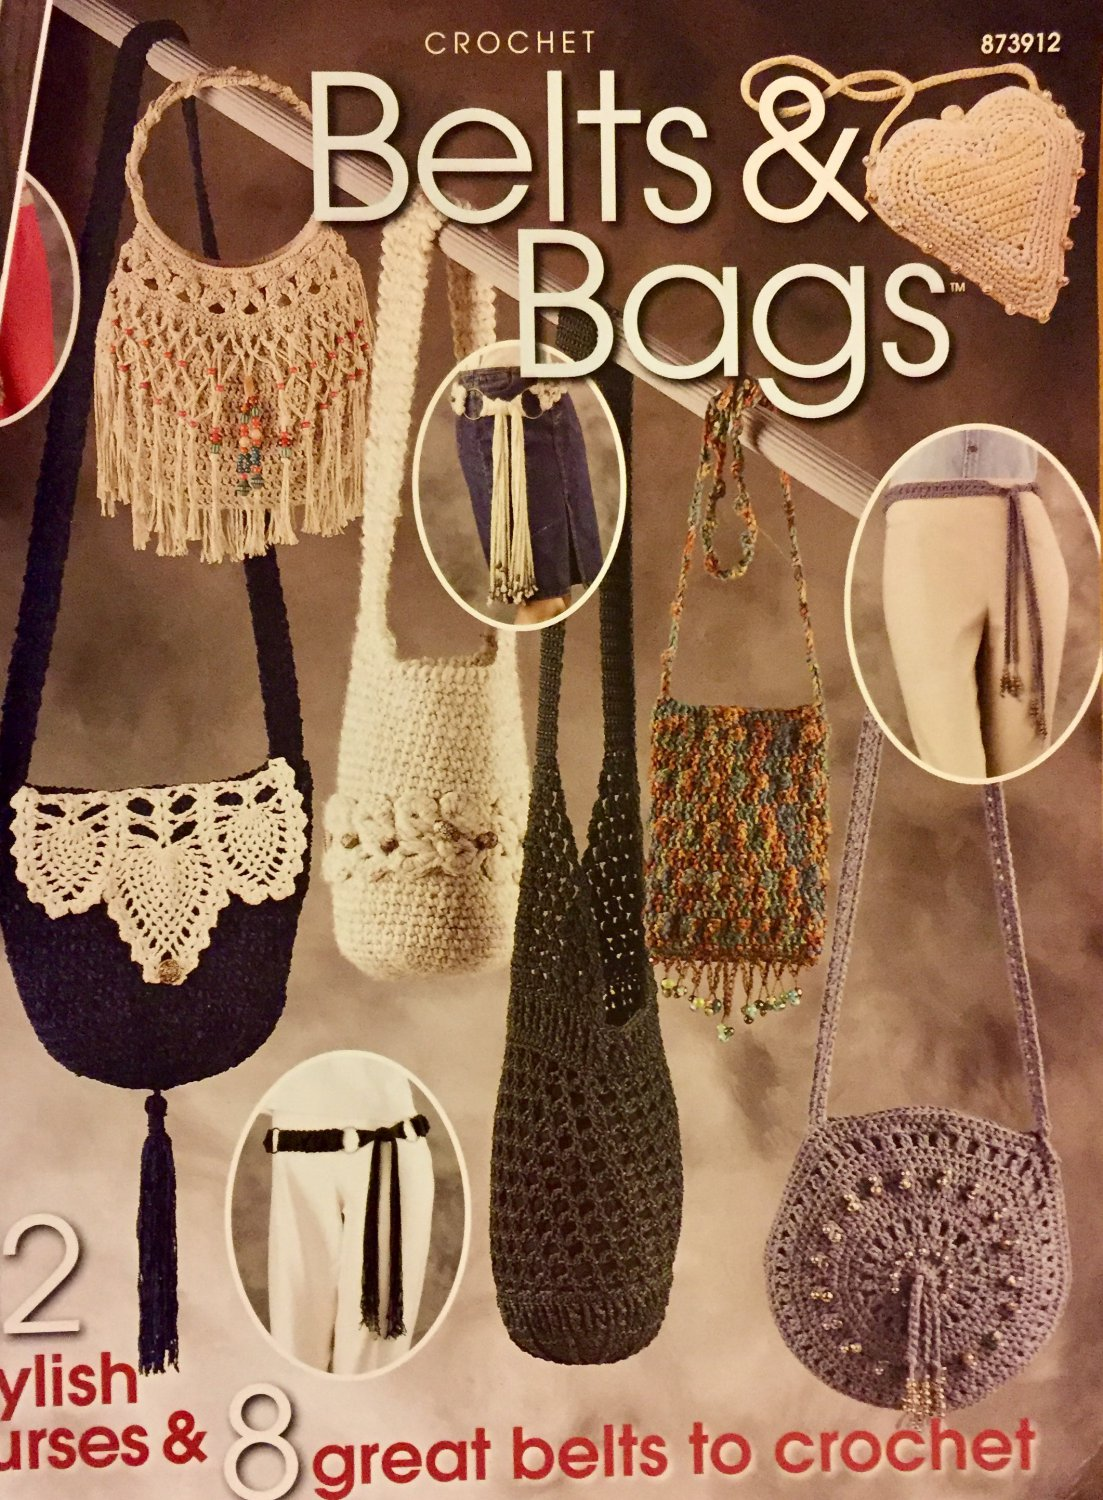 Annie's Attic 873912 Belts & Bags Crochet Pattern 12 purse designs 8 belt designs